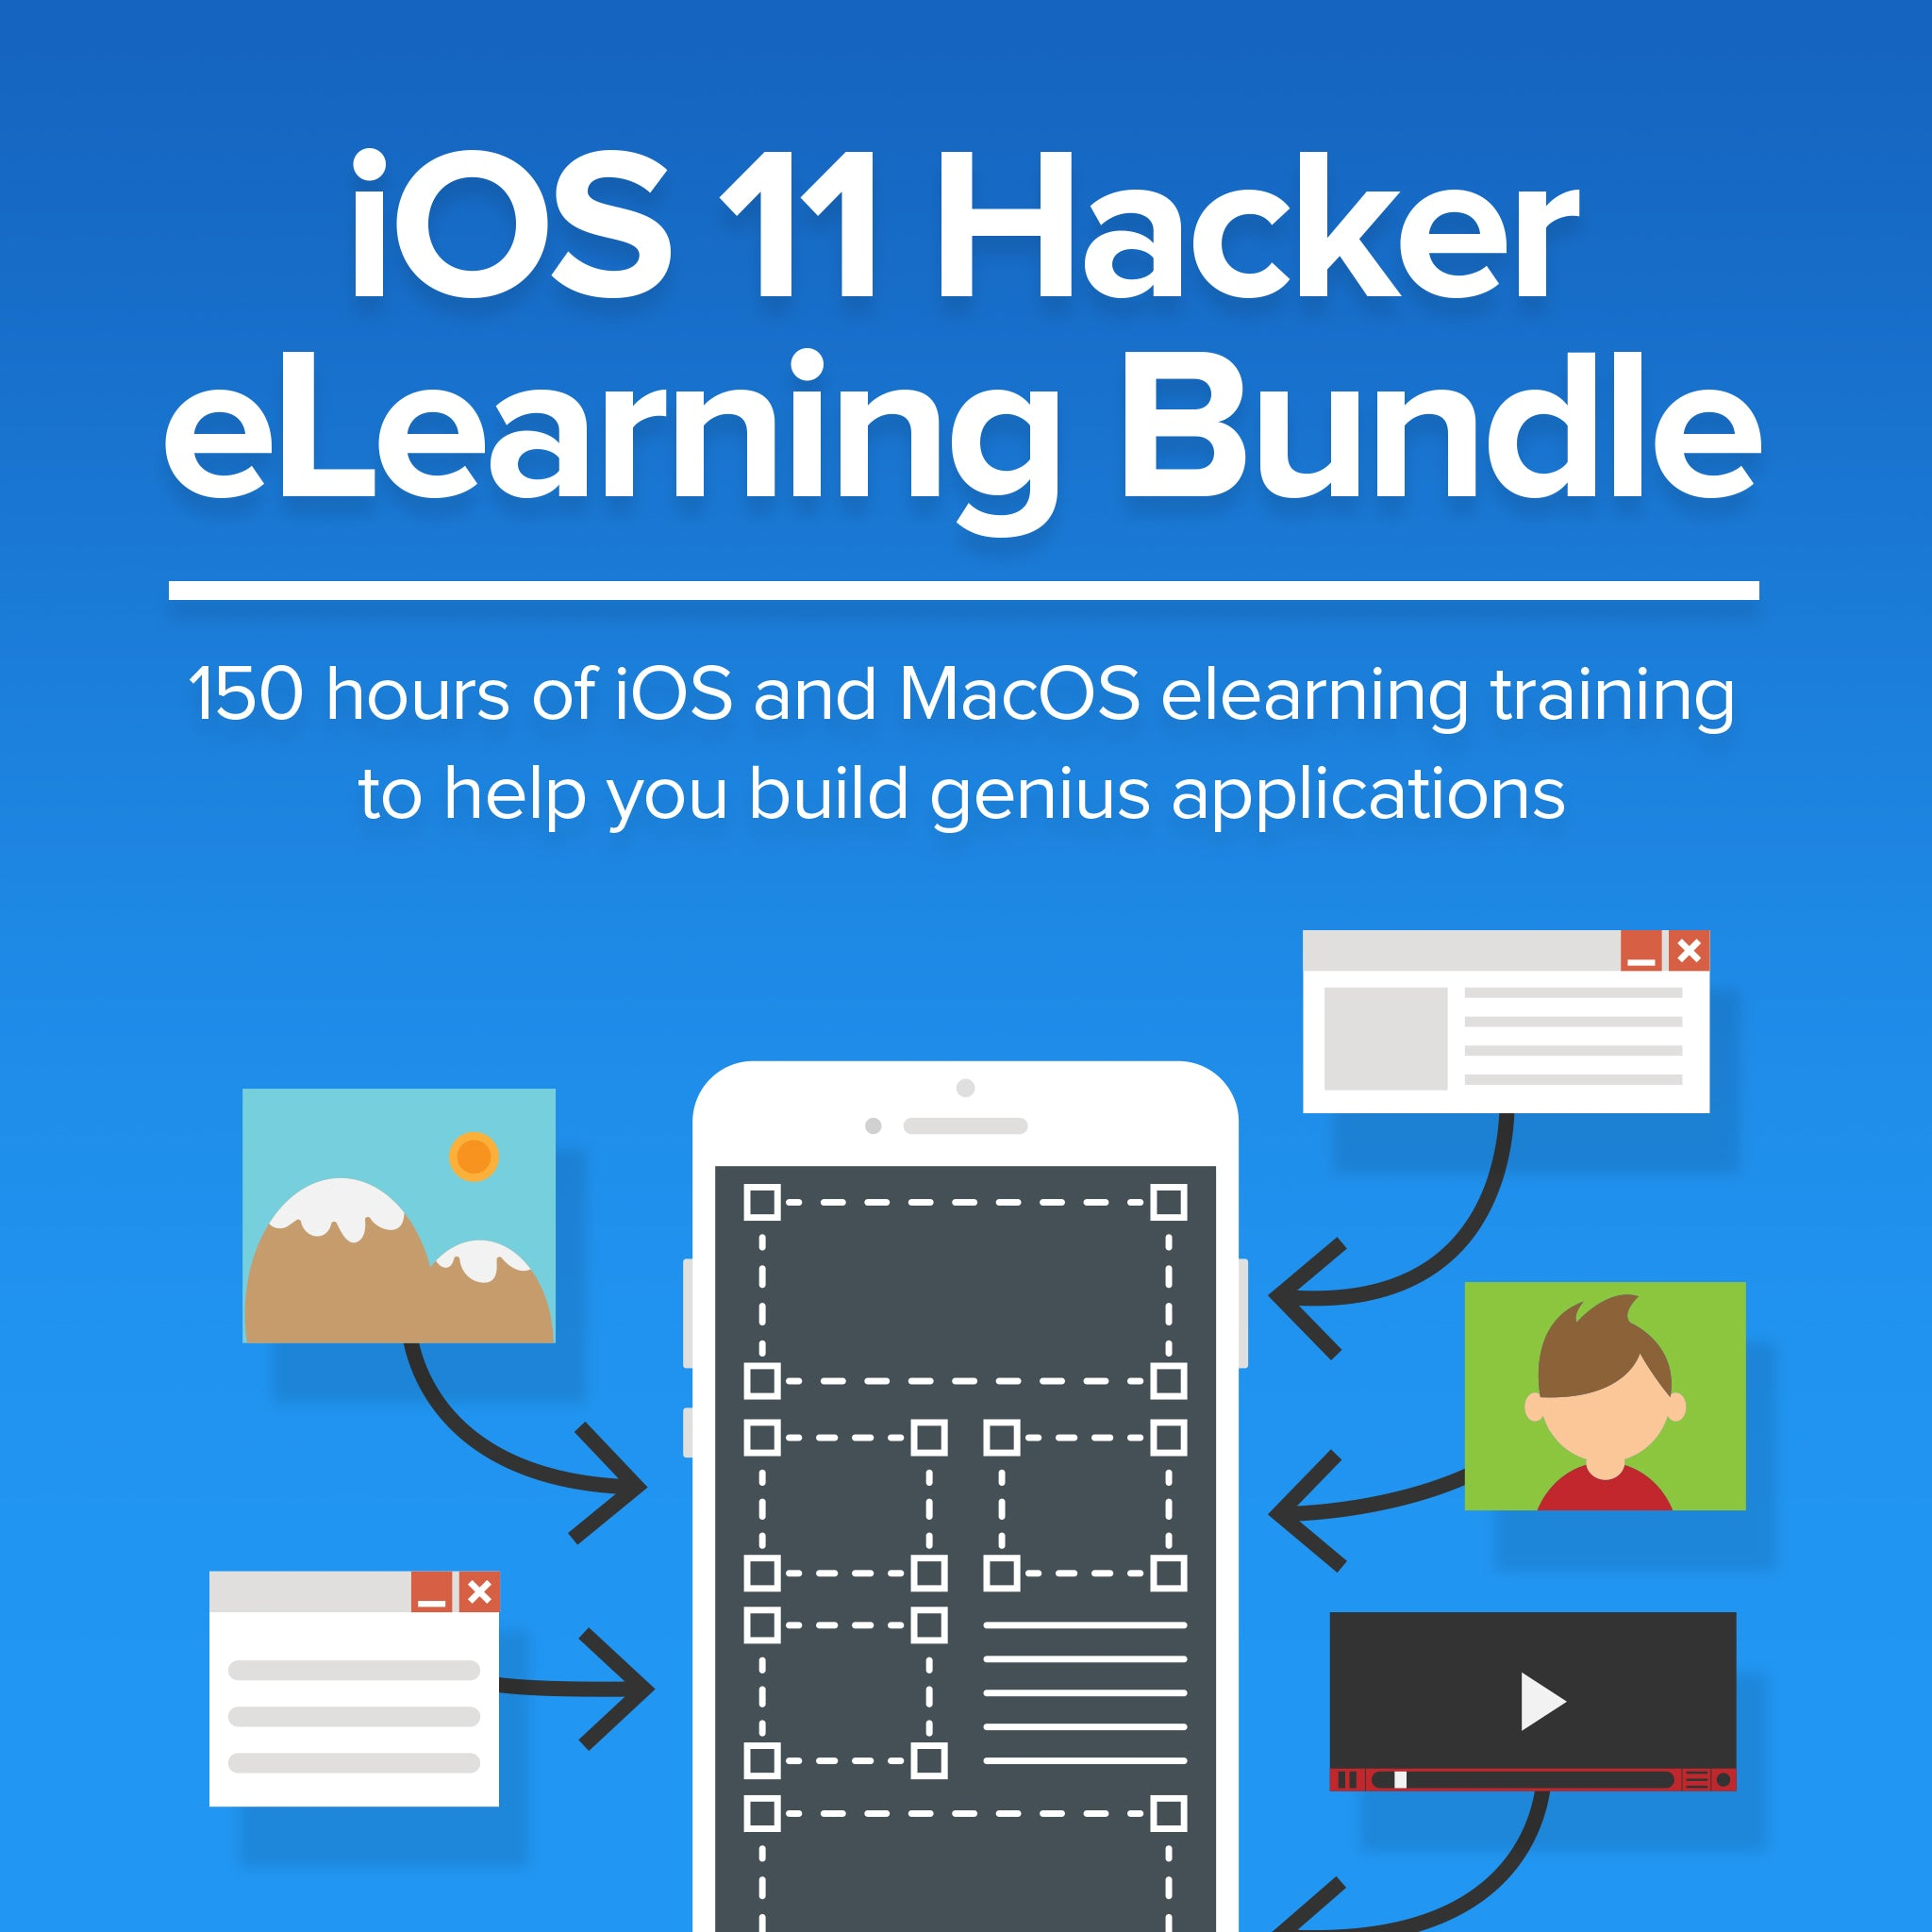 iOS 11 Hacker eLearning Bundle